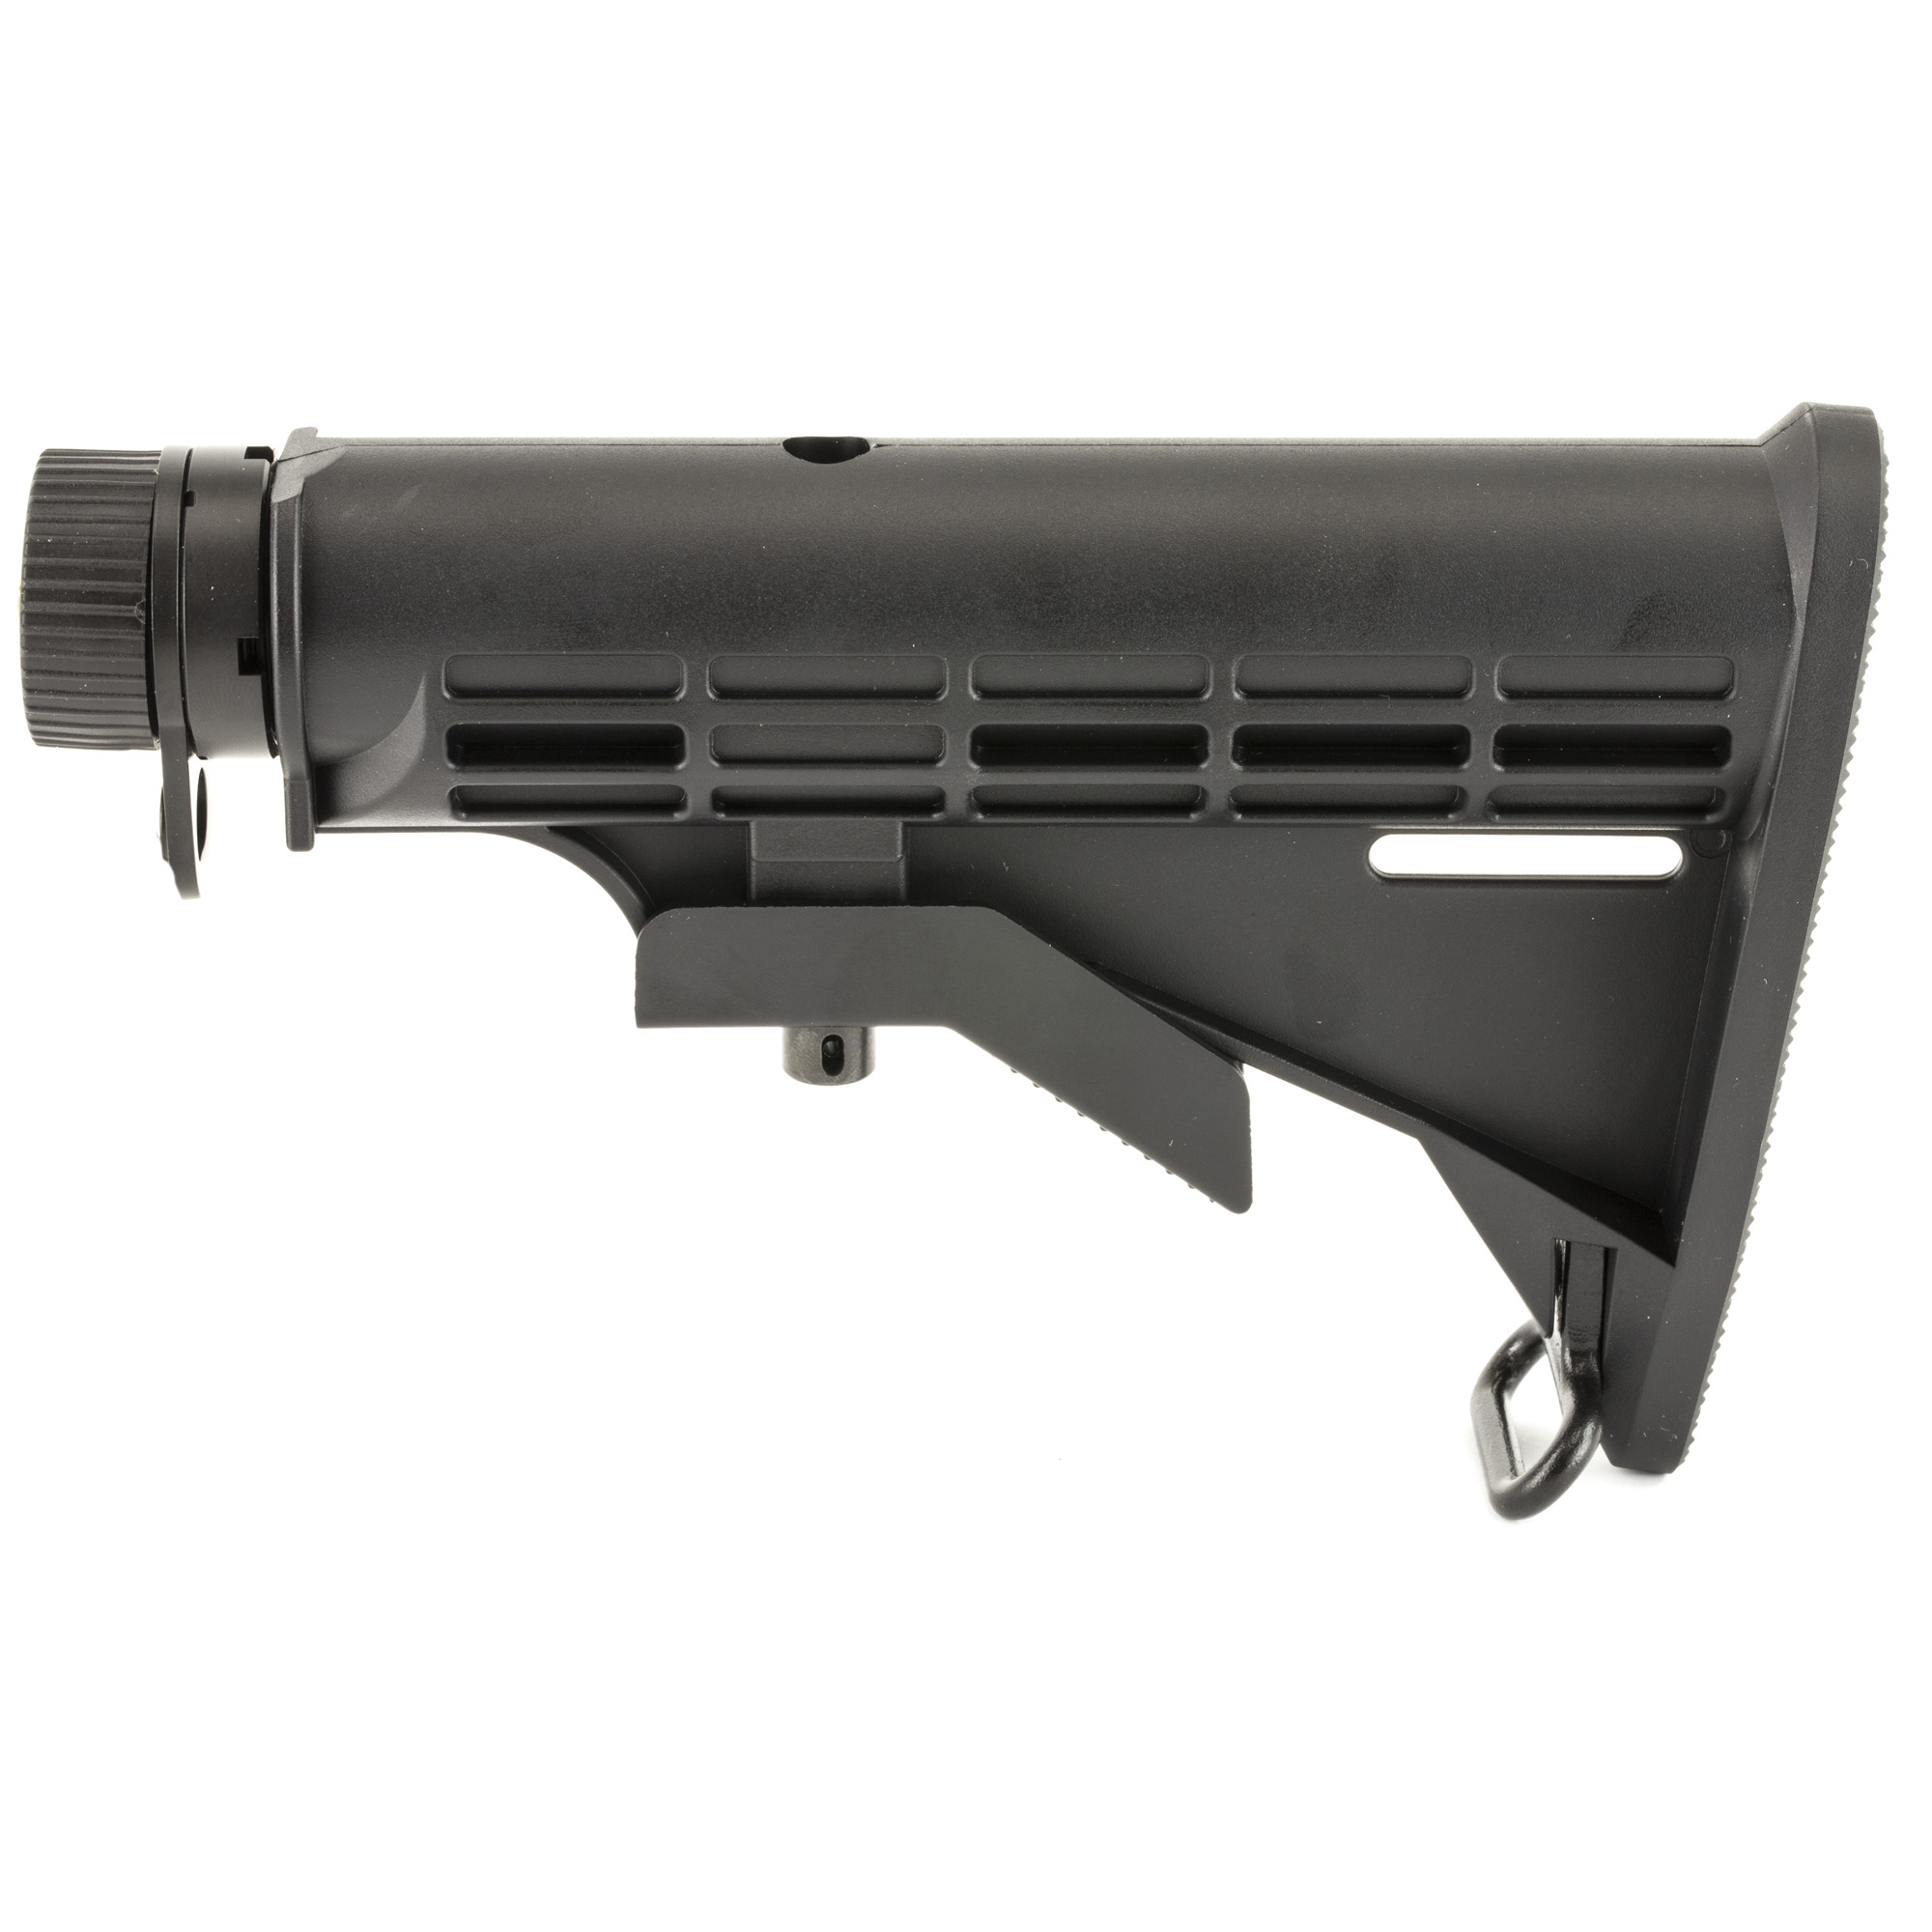 """The Leapers UTG PRO Model 4 MIL-SPEC 6-position collapsible AR-15 stock kit is precision machined to tight tolerances. The aluminum receiver extension provides shooters with six different lengths that allow you adjust your rifle for your body type-helping increase your weapon control"""" reaction time and accuracy. The high quality buffer tube-to-stock fitment ensures there is minimal wobble so that every time you mount your rifle you get a solid cheek weld. This Leapers stock assembly kit comes complete with a polymer stock"""" aluminum receiver extension"""" castle nut"""" locking plate"""" action spring and carbine buffer. Pick up a quality armorer's wrench and you will have everything you need to either convert your rifle from a fixed stock or install this collapsible stock on a new build."""